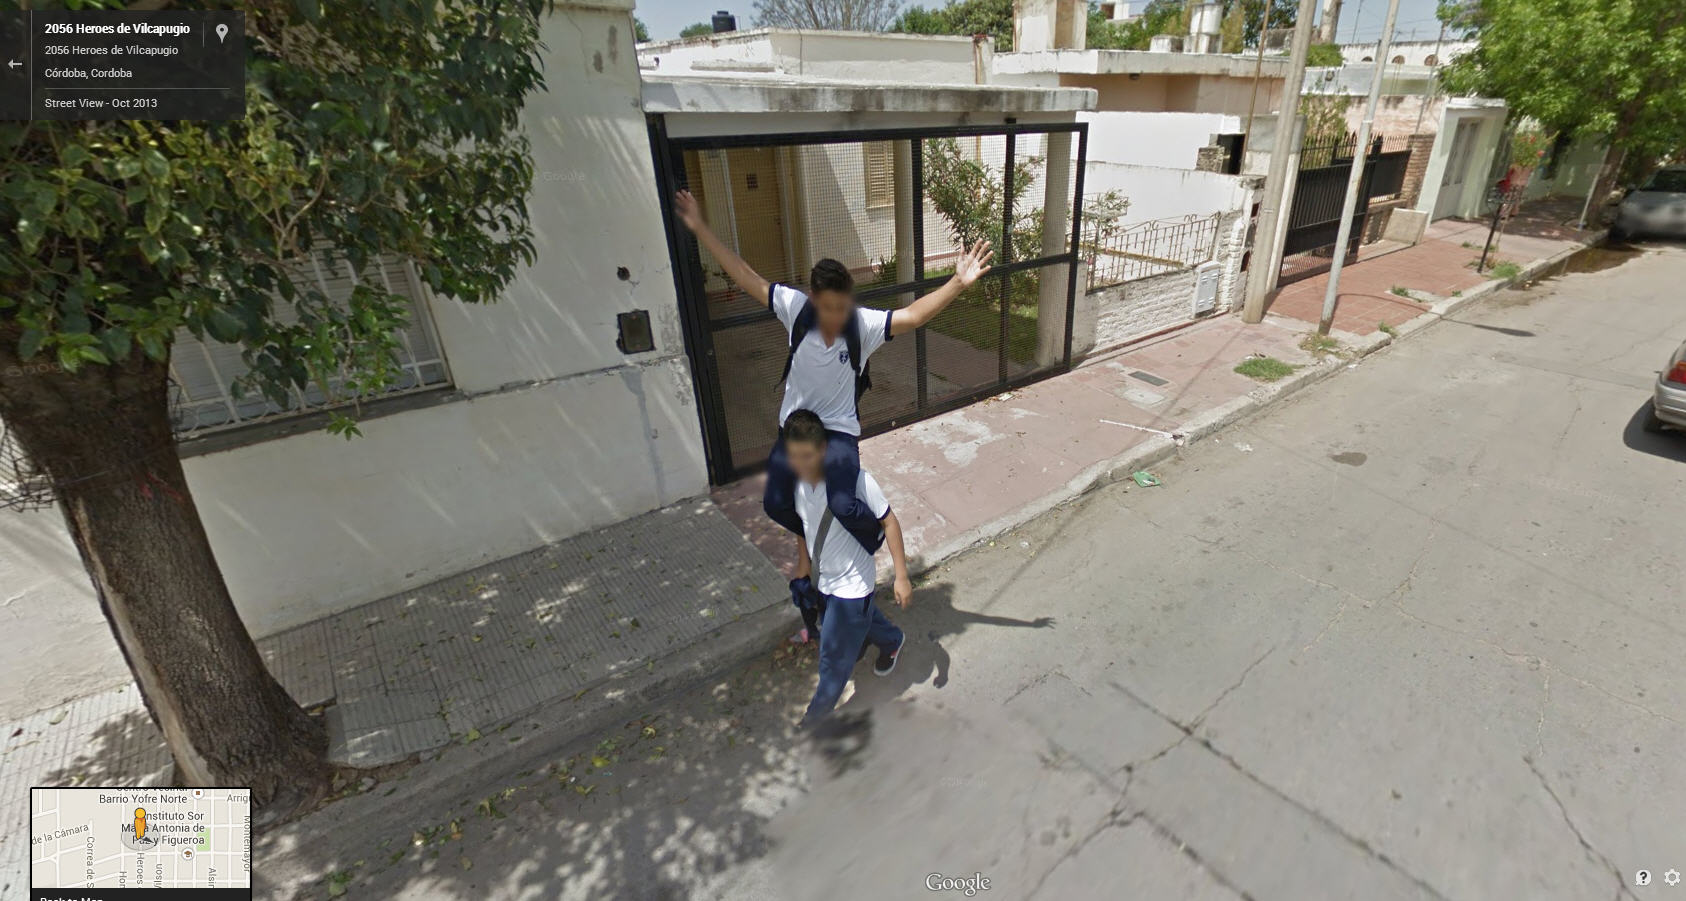 how to use street view on google maps